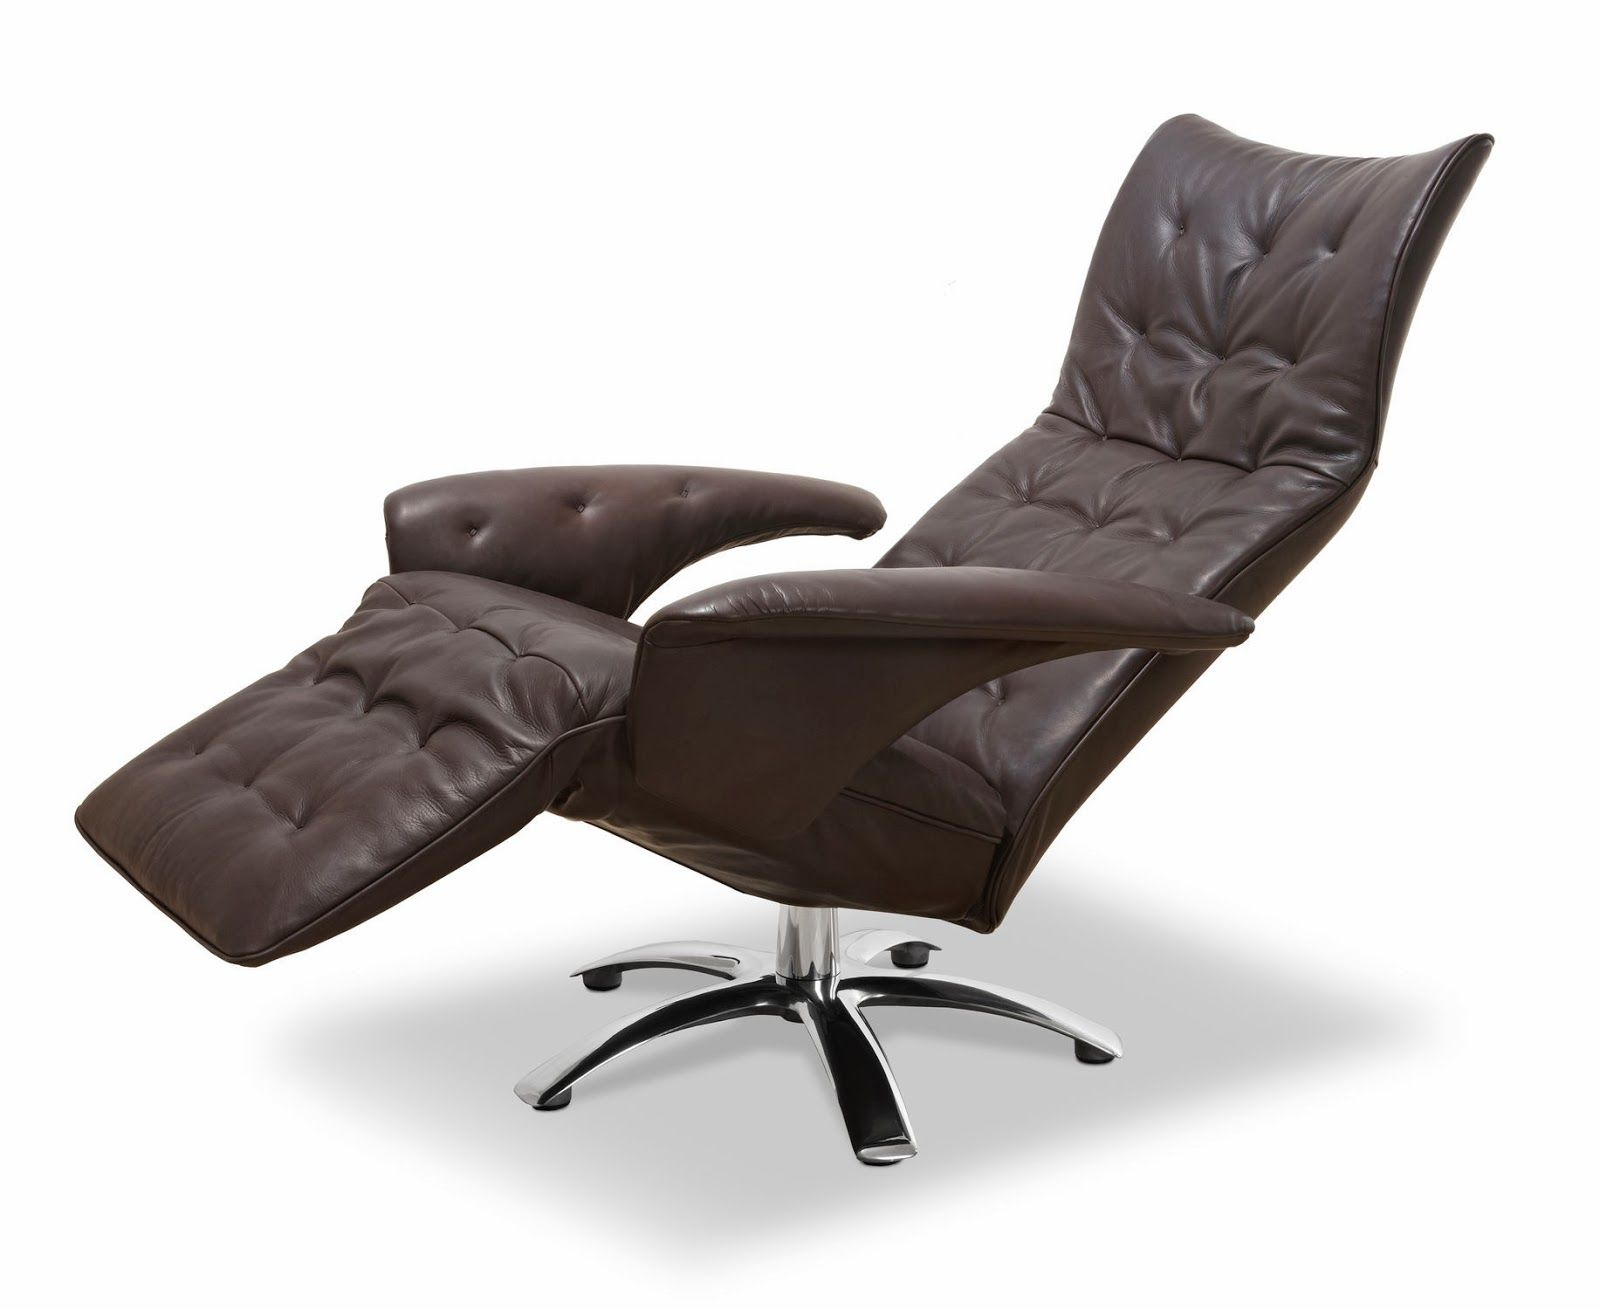 Himolla Sessel Amazon Furniture Modern Recliner Chair Design With Brown Leather Modern